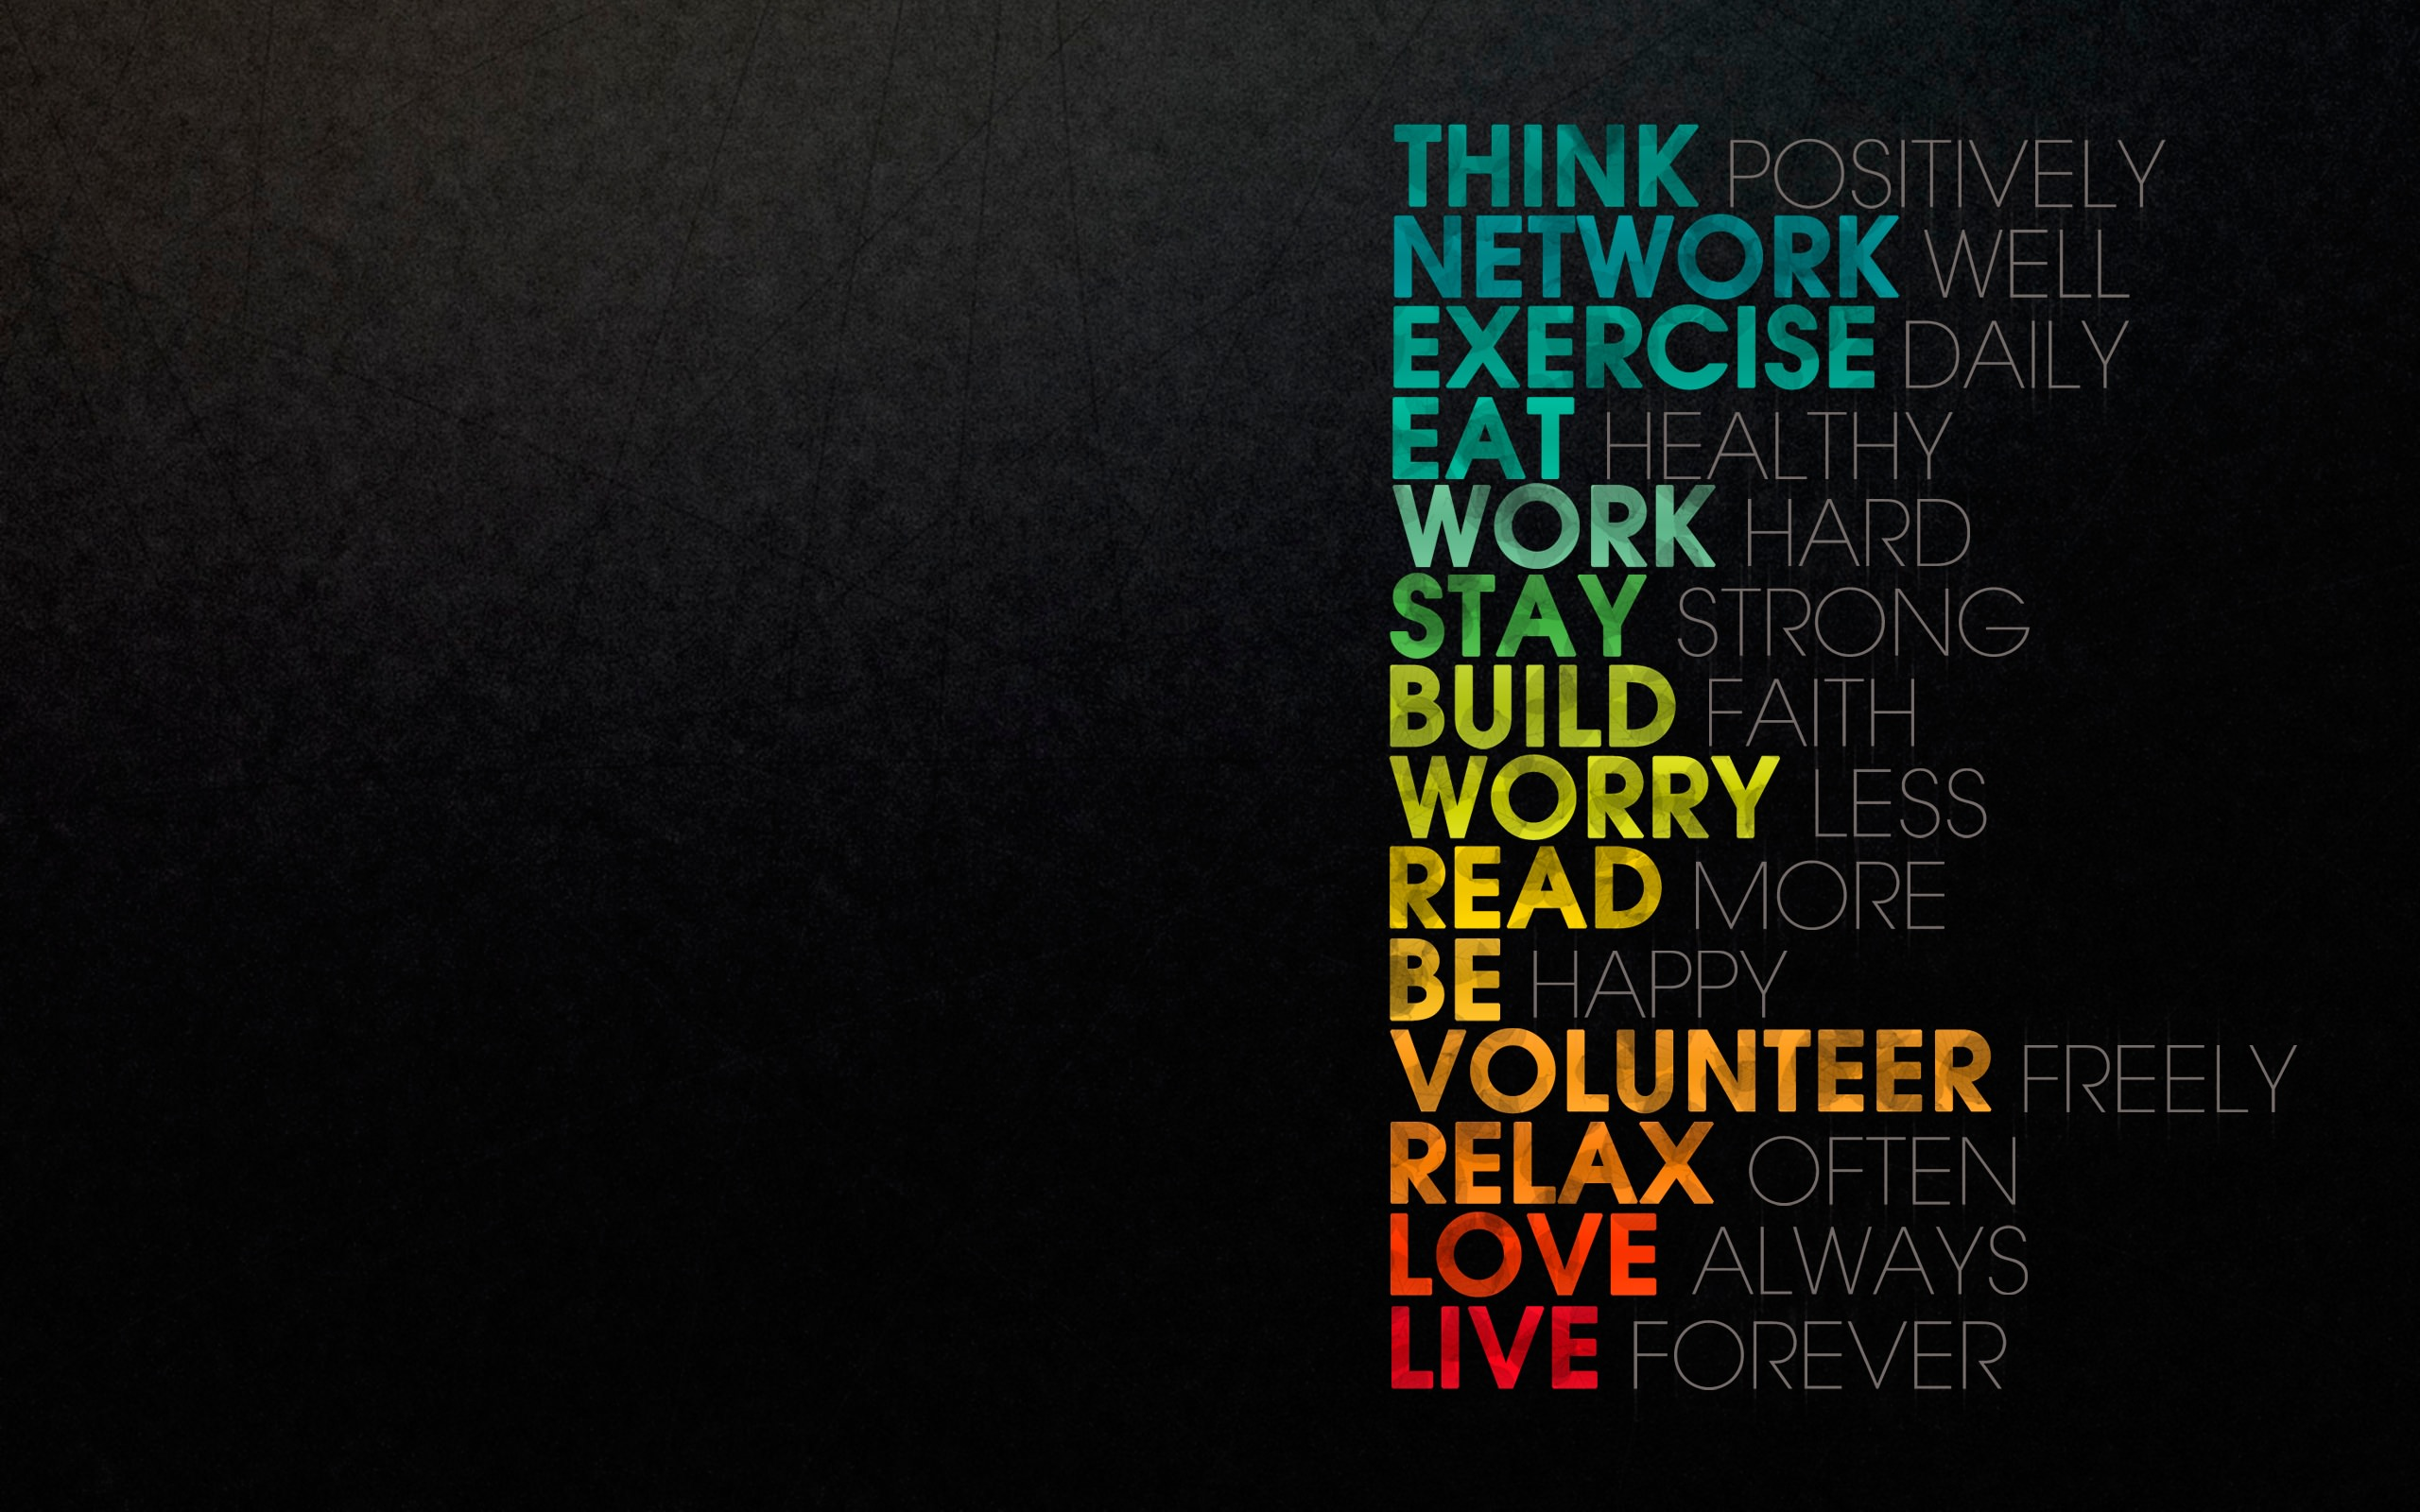 Inspirational Typography HD Wallpapers for Desktop iPhone and Android 2560x1600